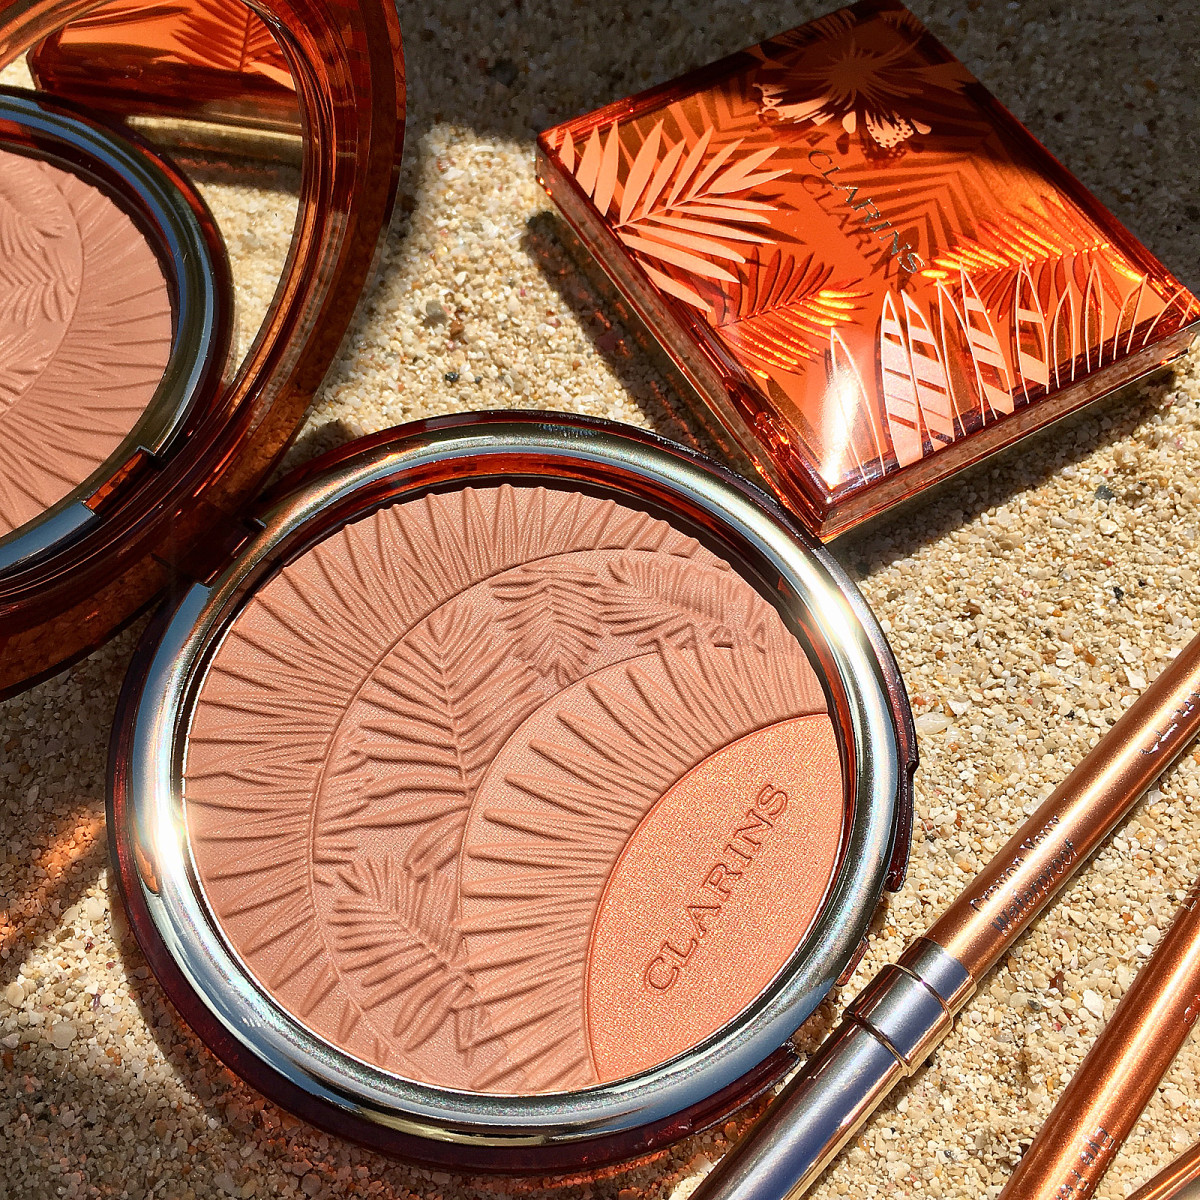 Clarins Summer 2017 Bronzer & Blush compact, eyeshadow compact, waterproof liners in Gold and Copper